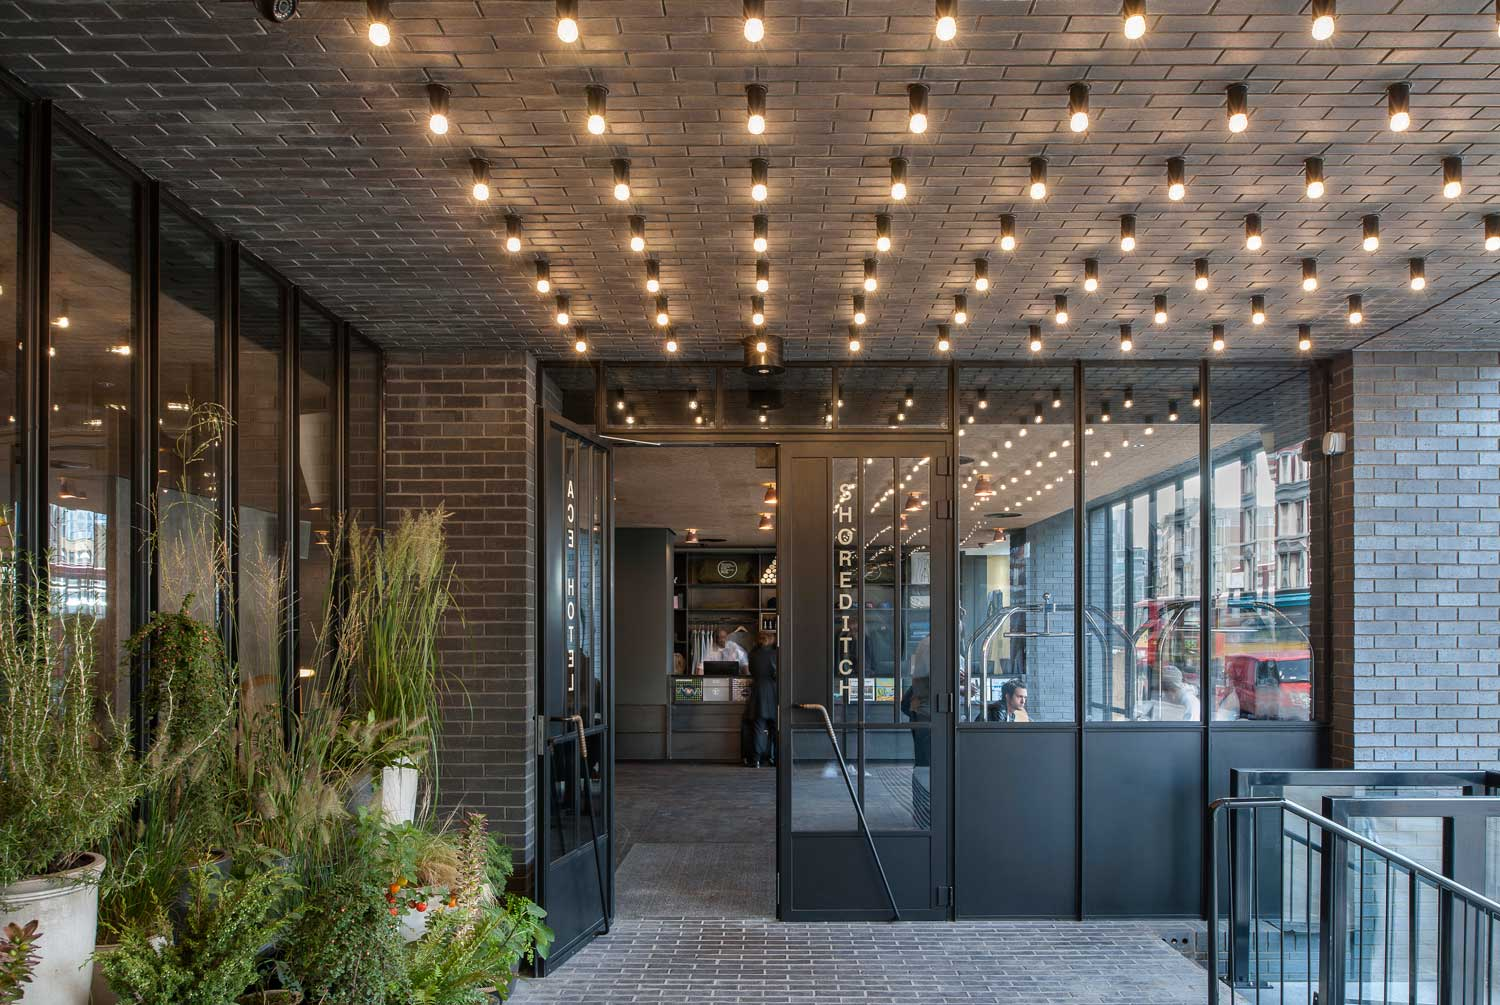 Ace Hotel London Shoreditch | Yellowtrace